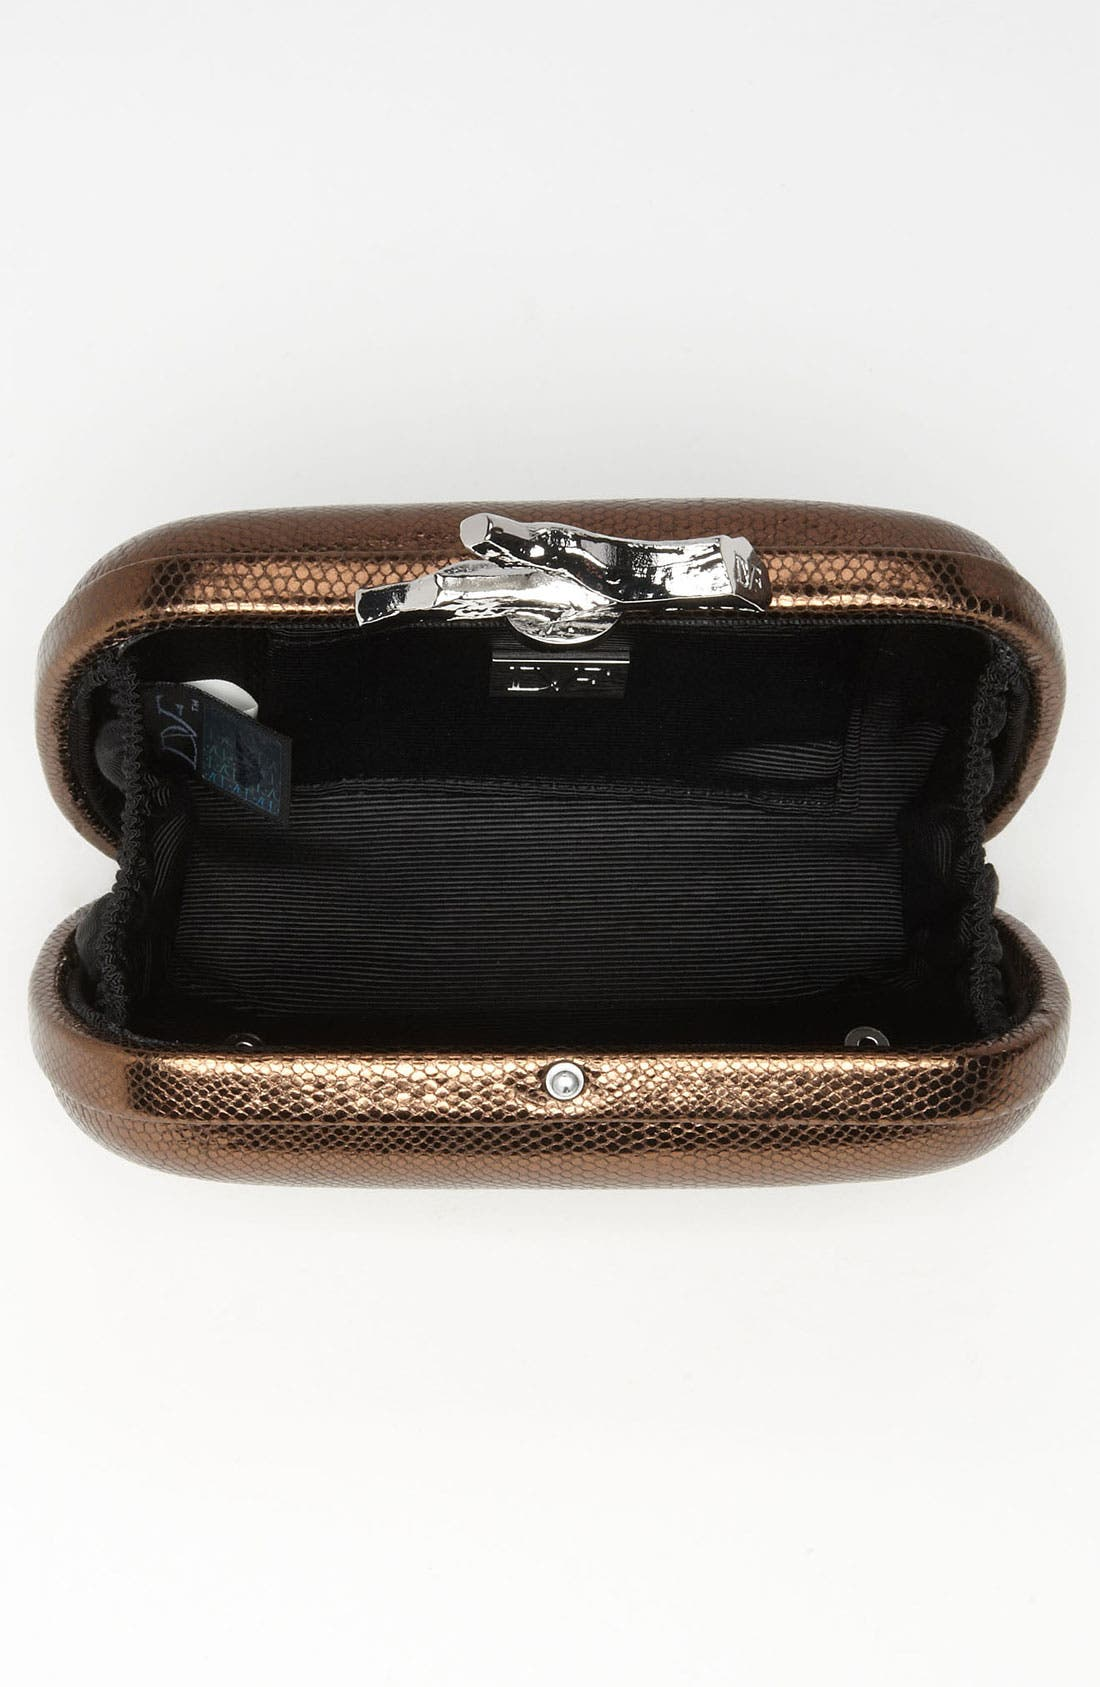 Alternate Image 3  - Diane von Furstenberg 'Lytton - Small' Metallic Leather Clutch